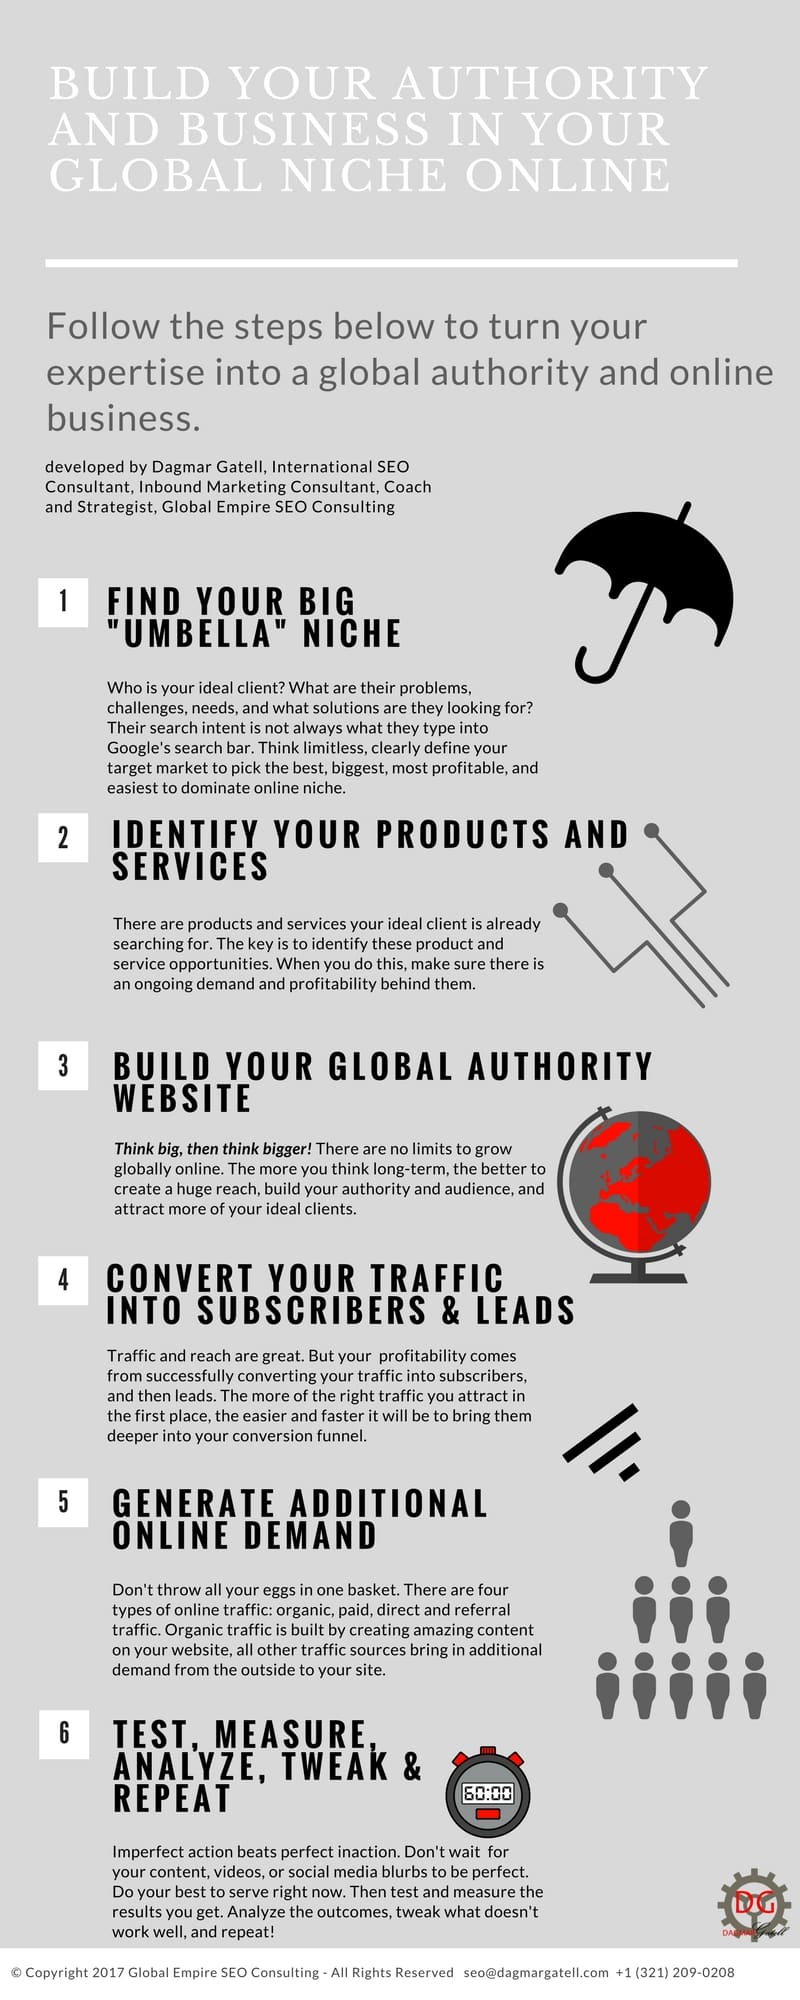 infographic build your global authority and business online, developed by international SEO consultant, inbound marketing consultant, coach, and strategist Dagmar Gatell